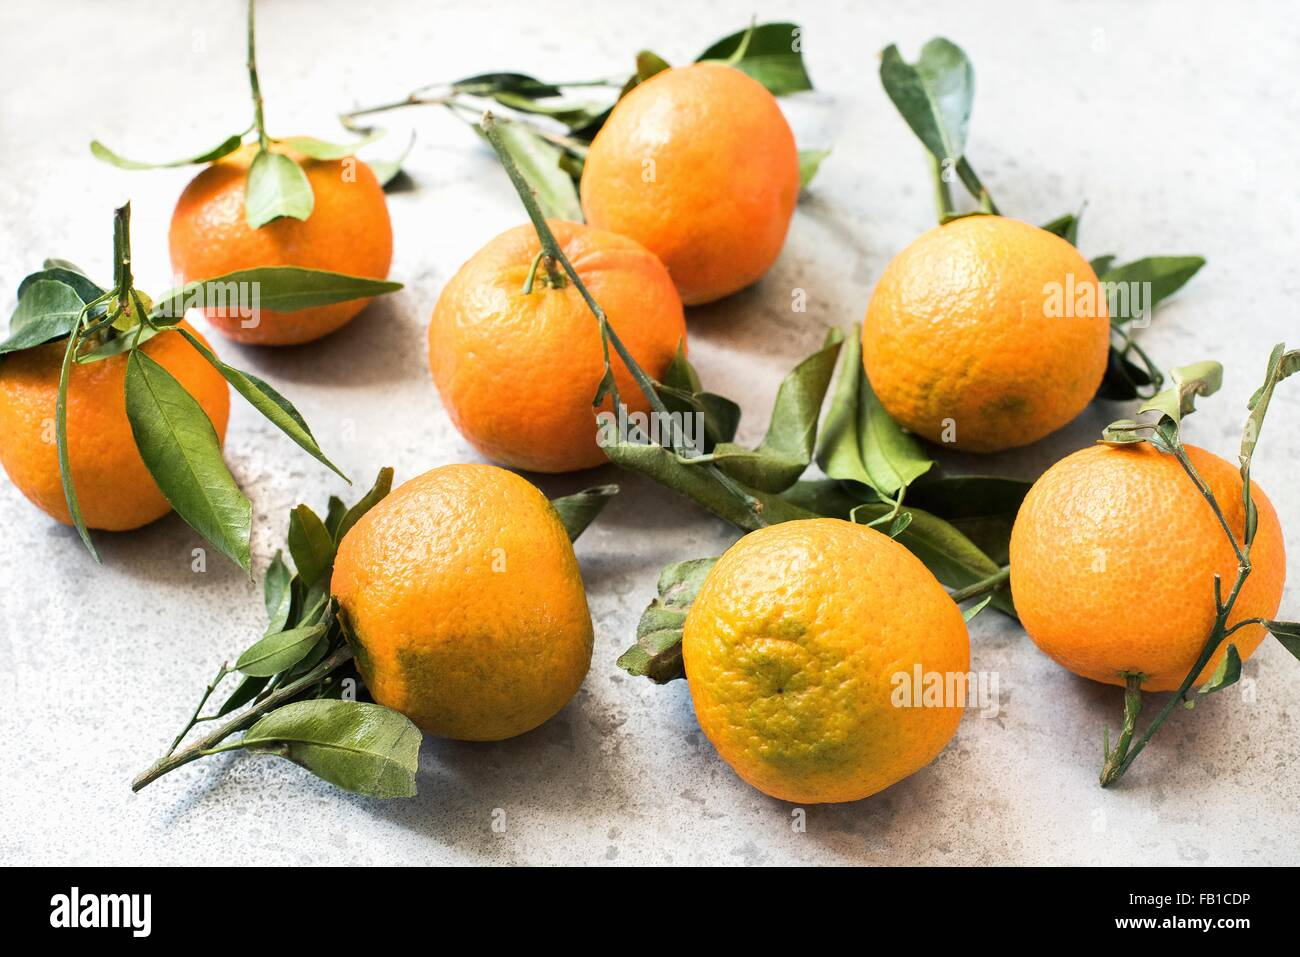 High angle view of oranges with leaves - Stock Image